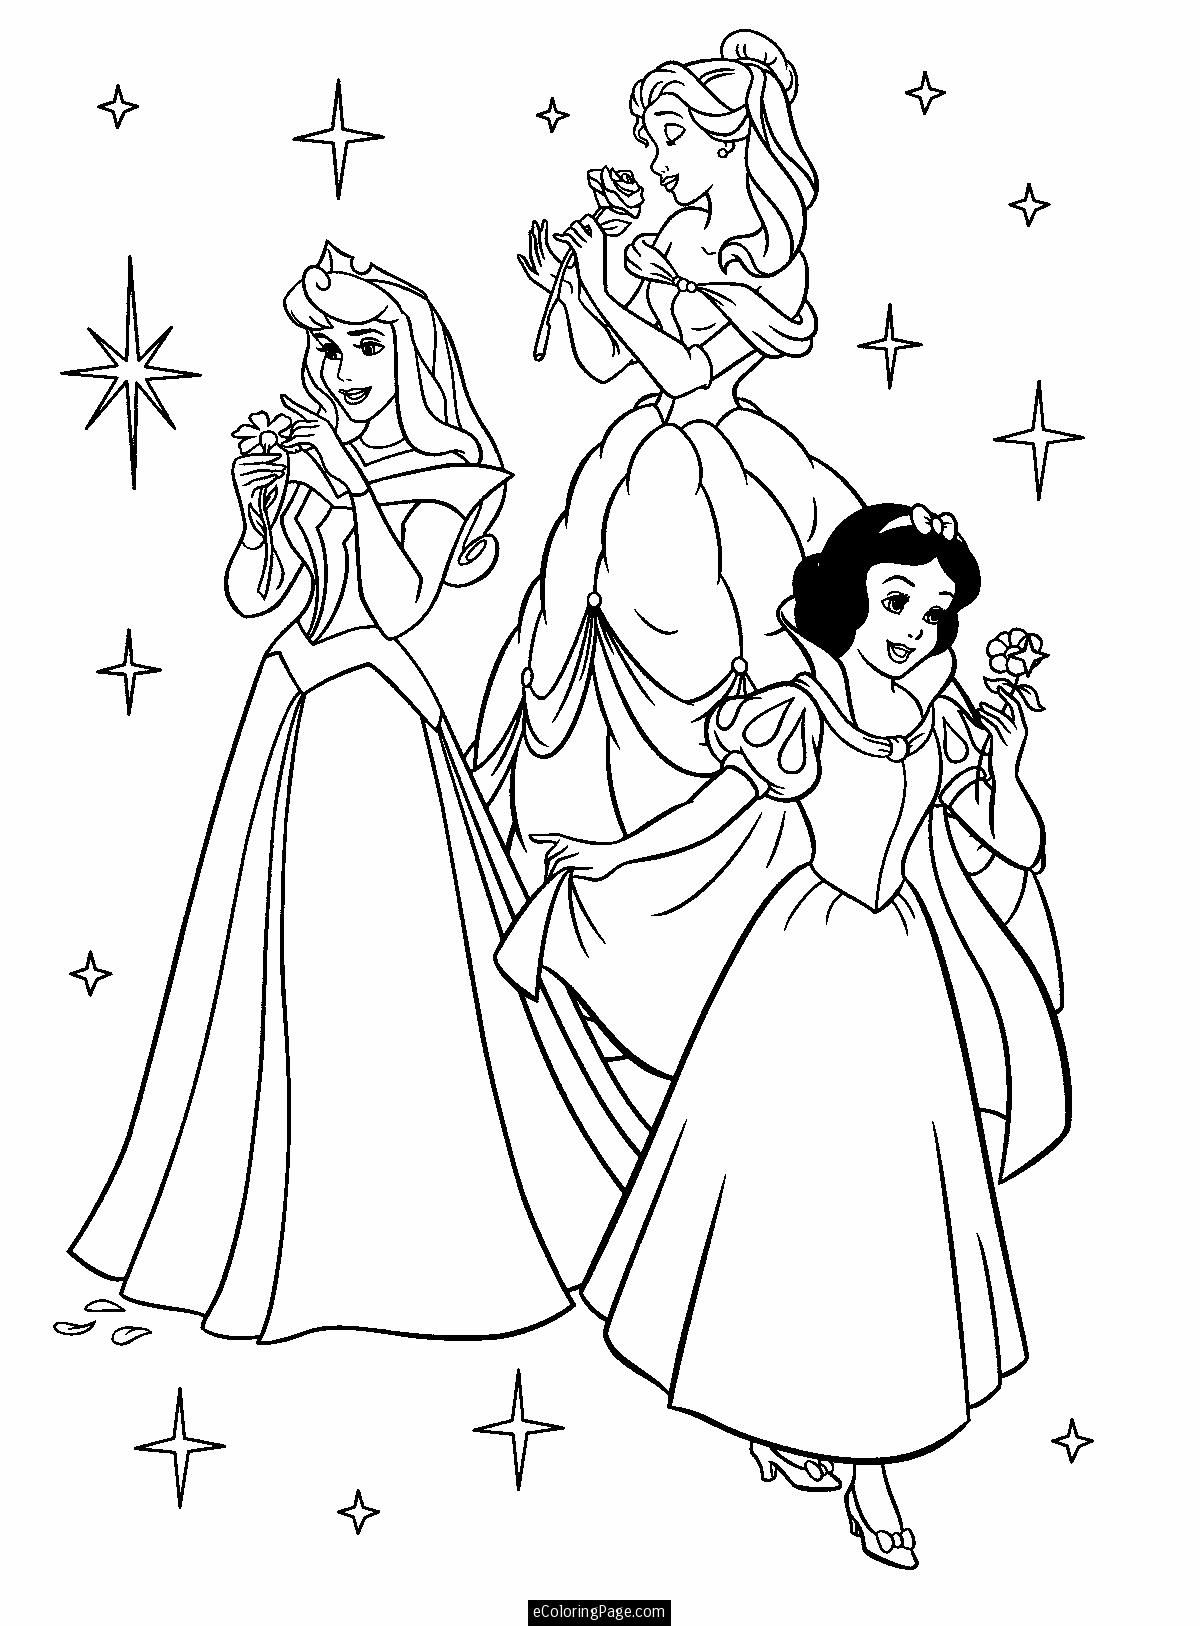 Disney Princesses Aurora Belle and Snow White with Flowers